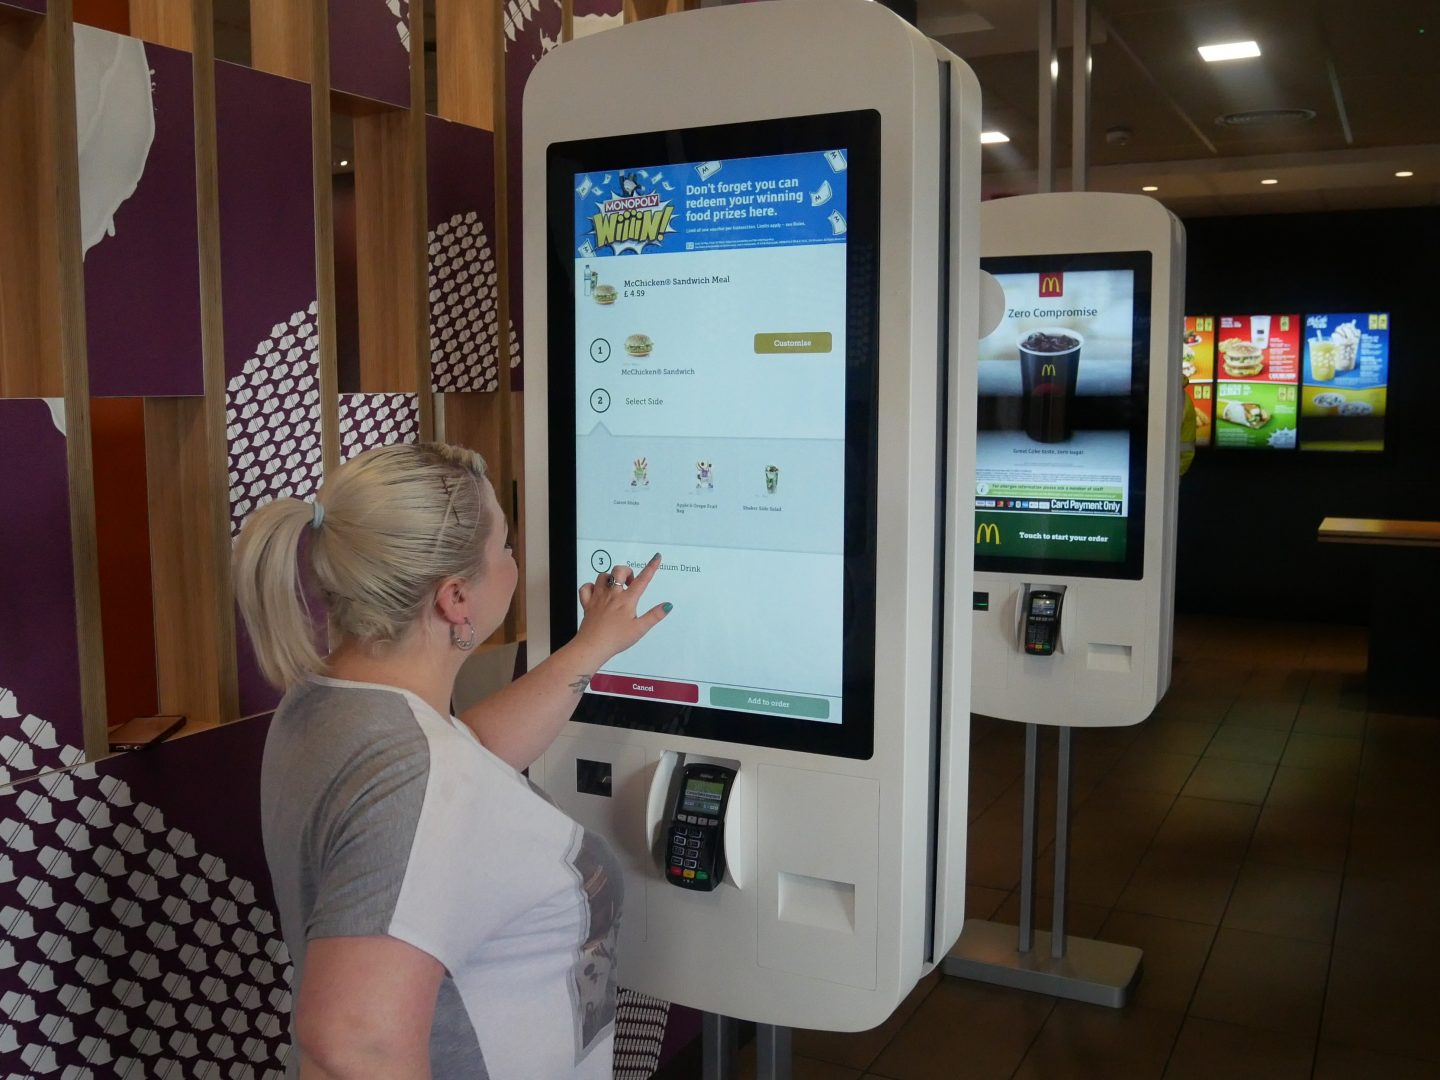 Maccas app prizes and awards